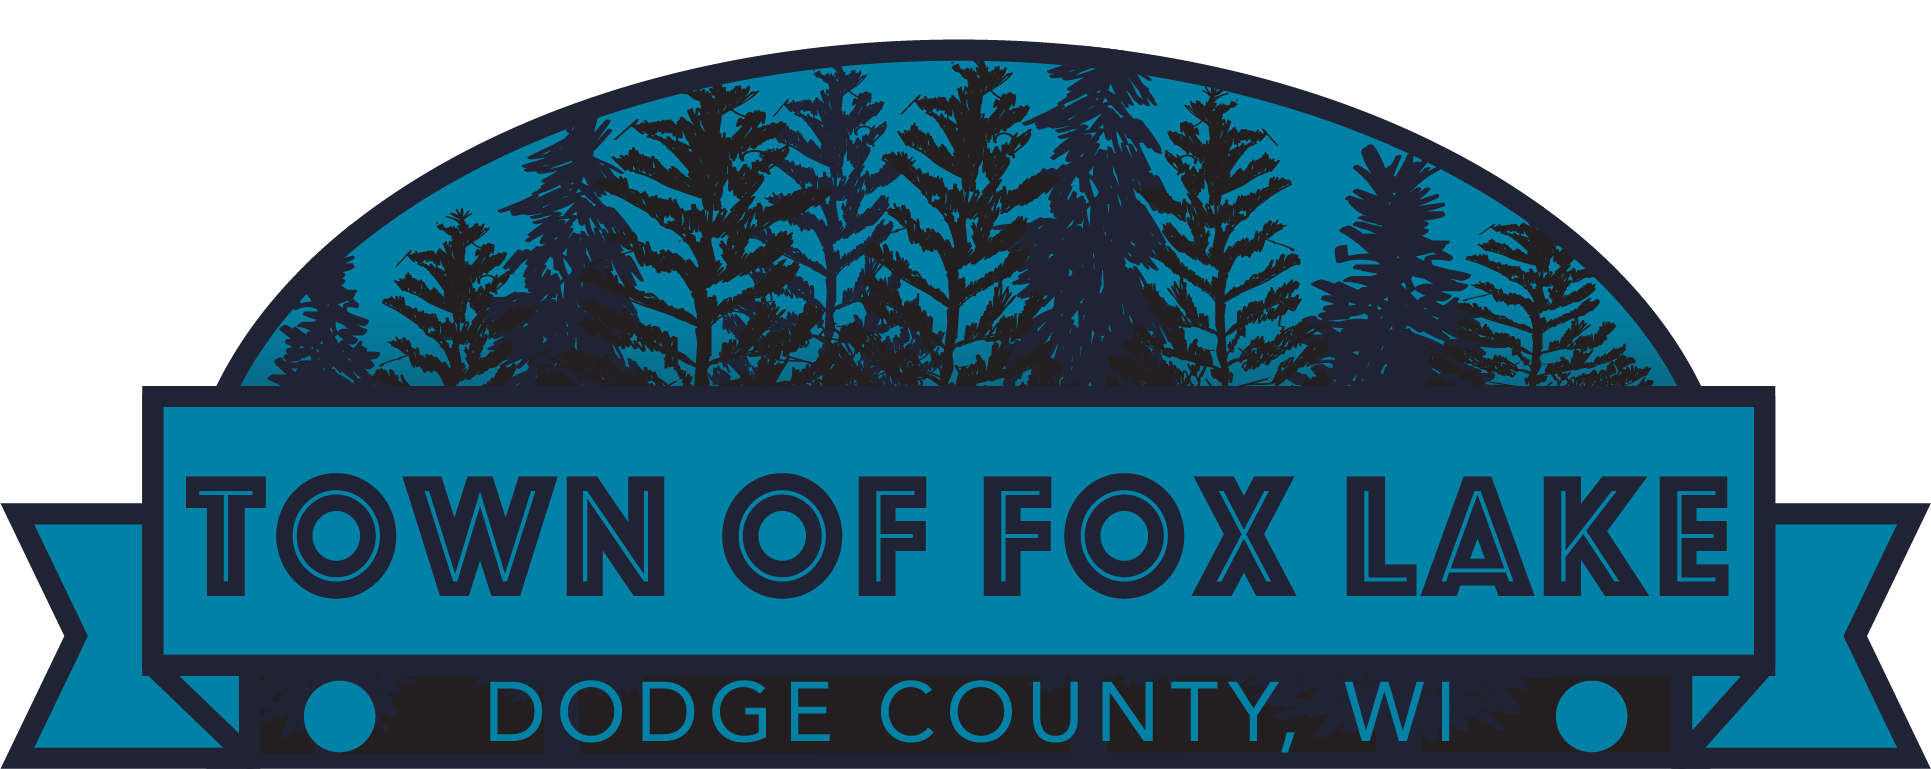 Town of Fox Lake